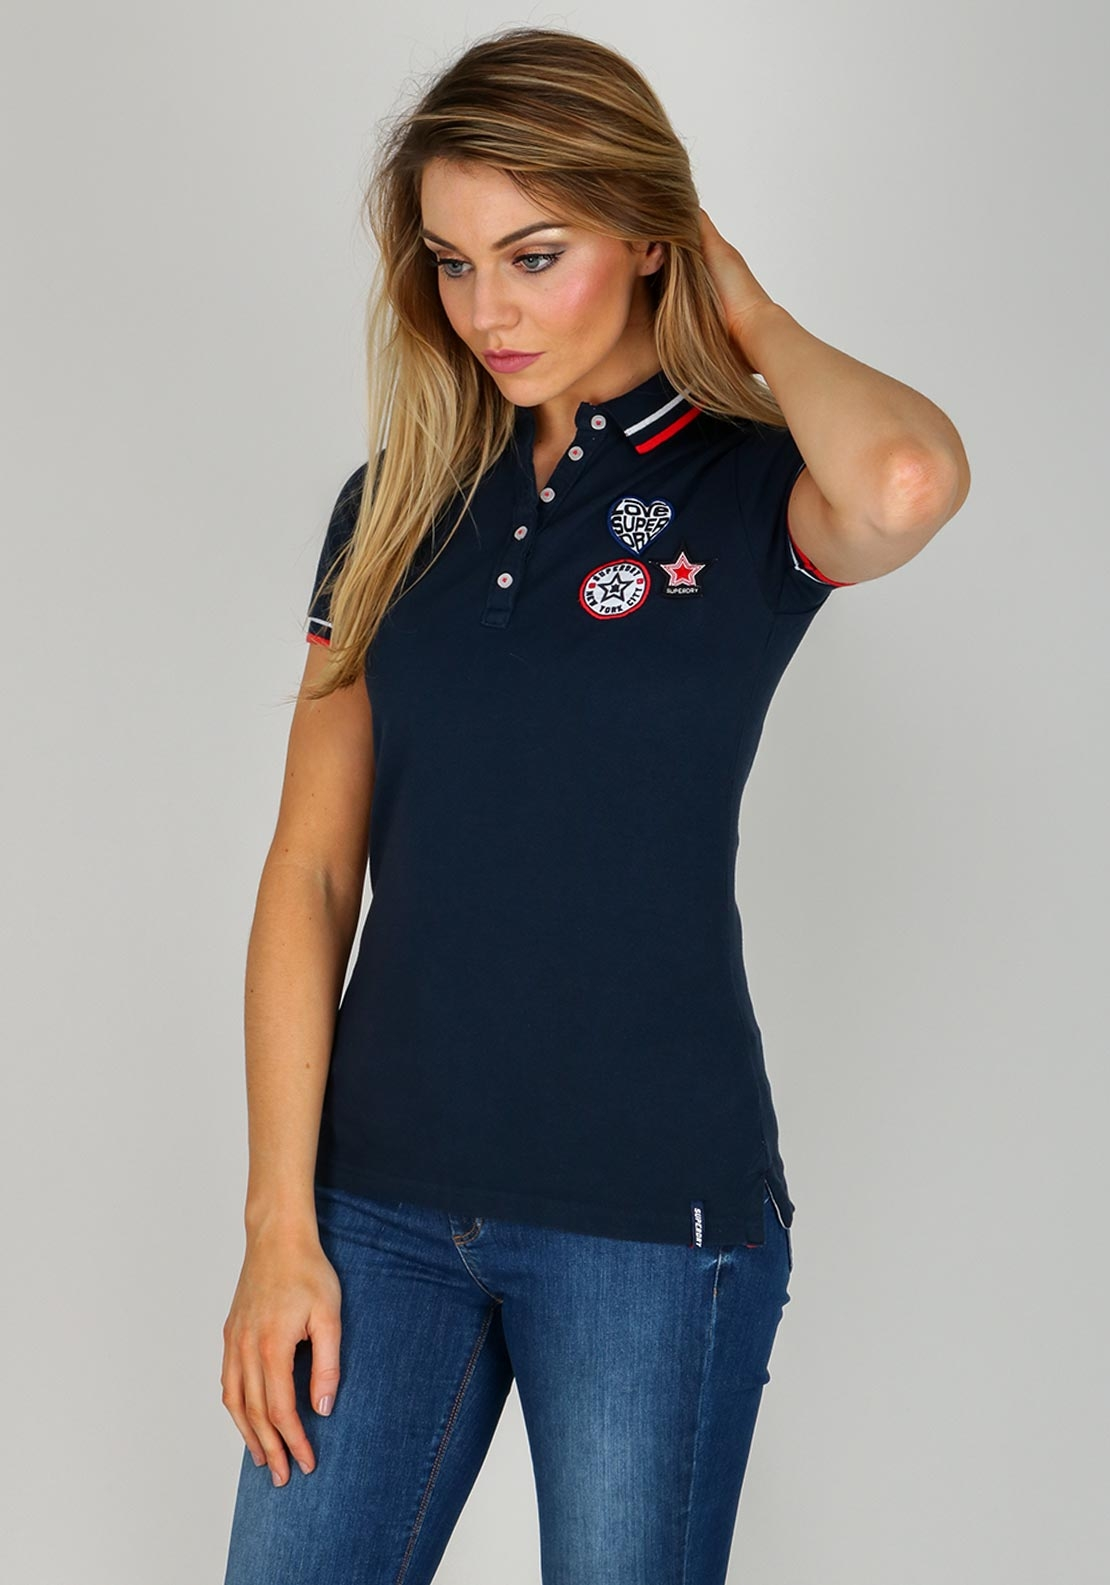 new authentic best loved best sell Super Dry Polo Shirts Ladies | Coolmine Community School